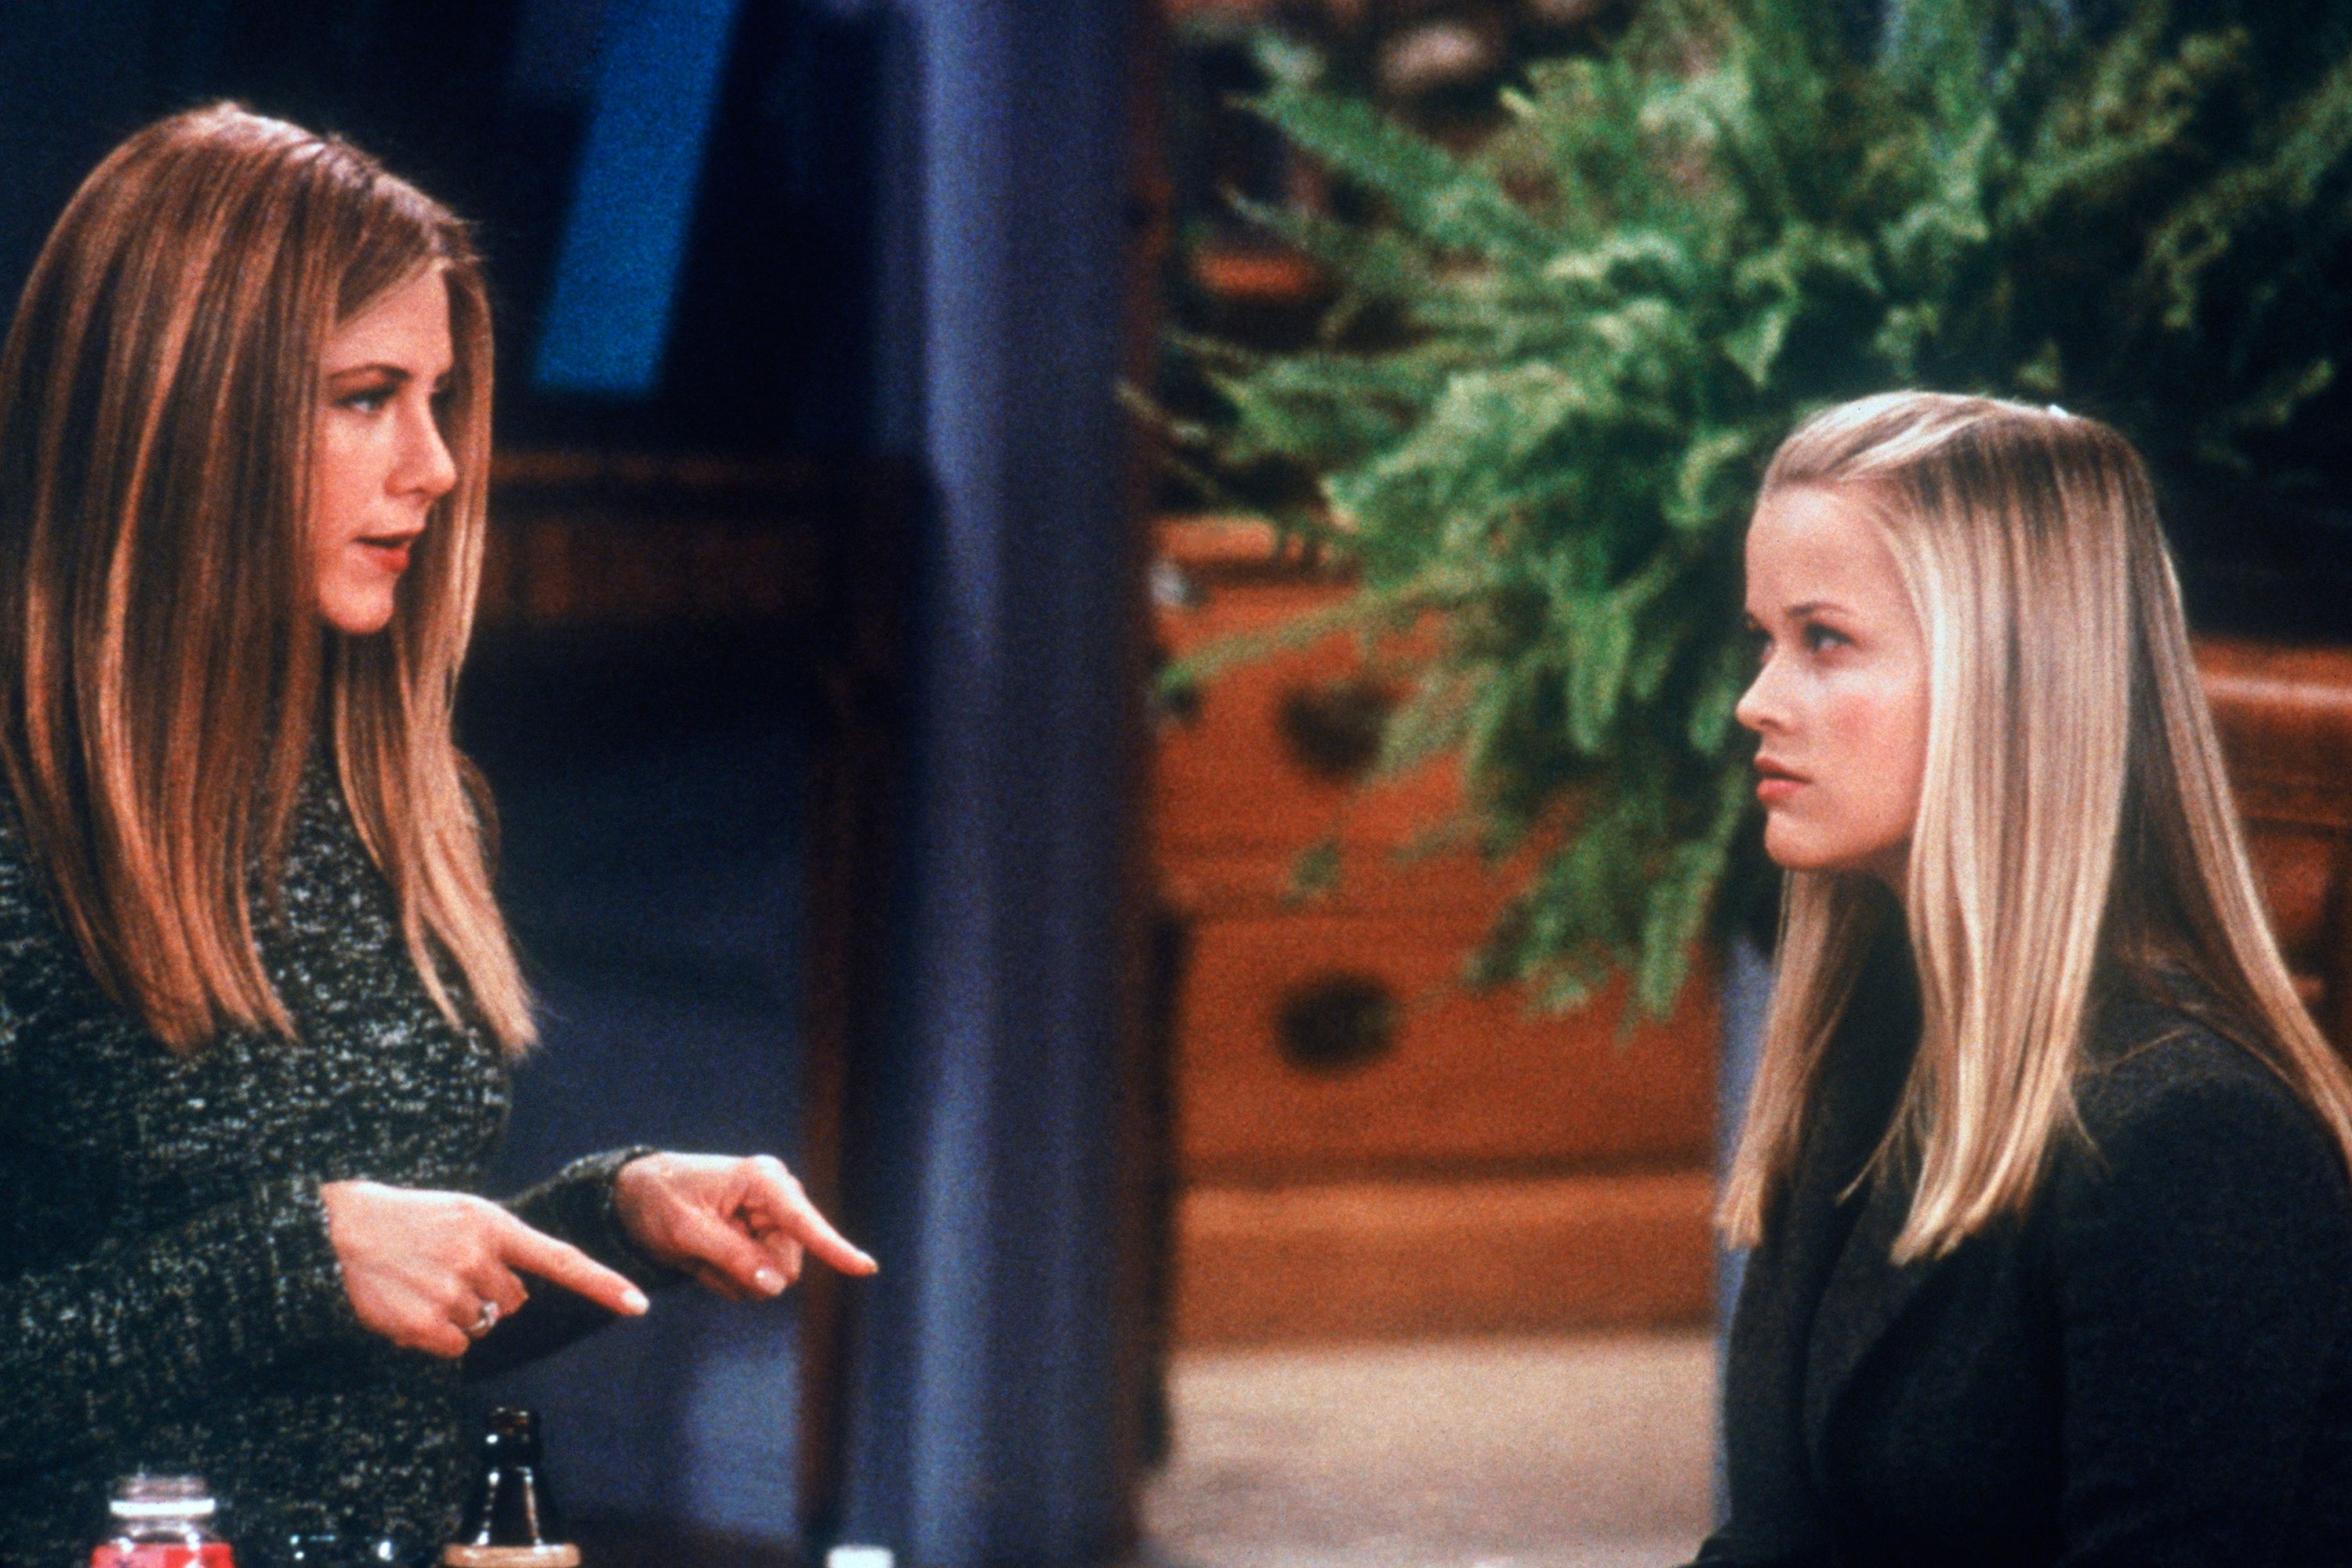 Jennifer Aniston and Reese Witherspoon in 'Friends'. Getty Images